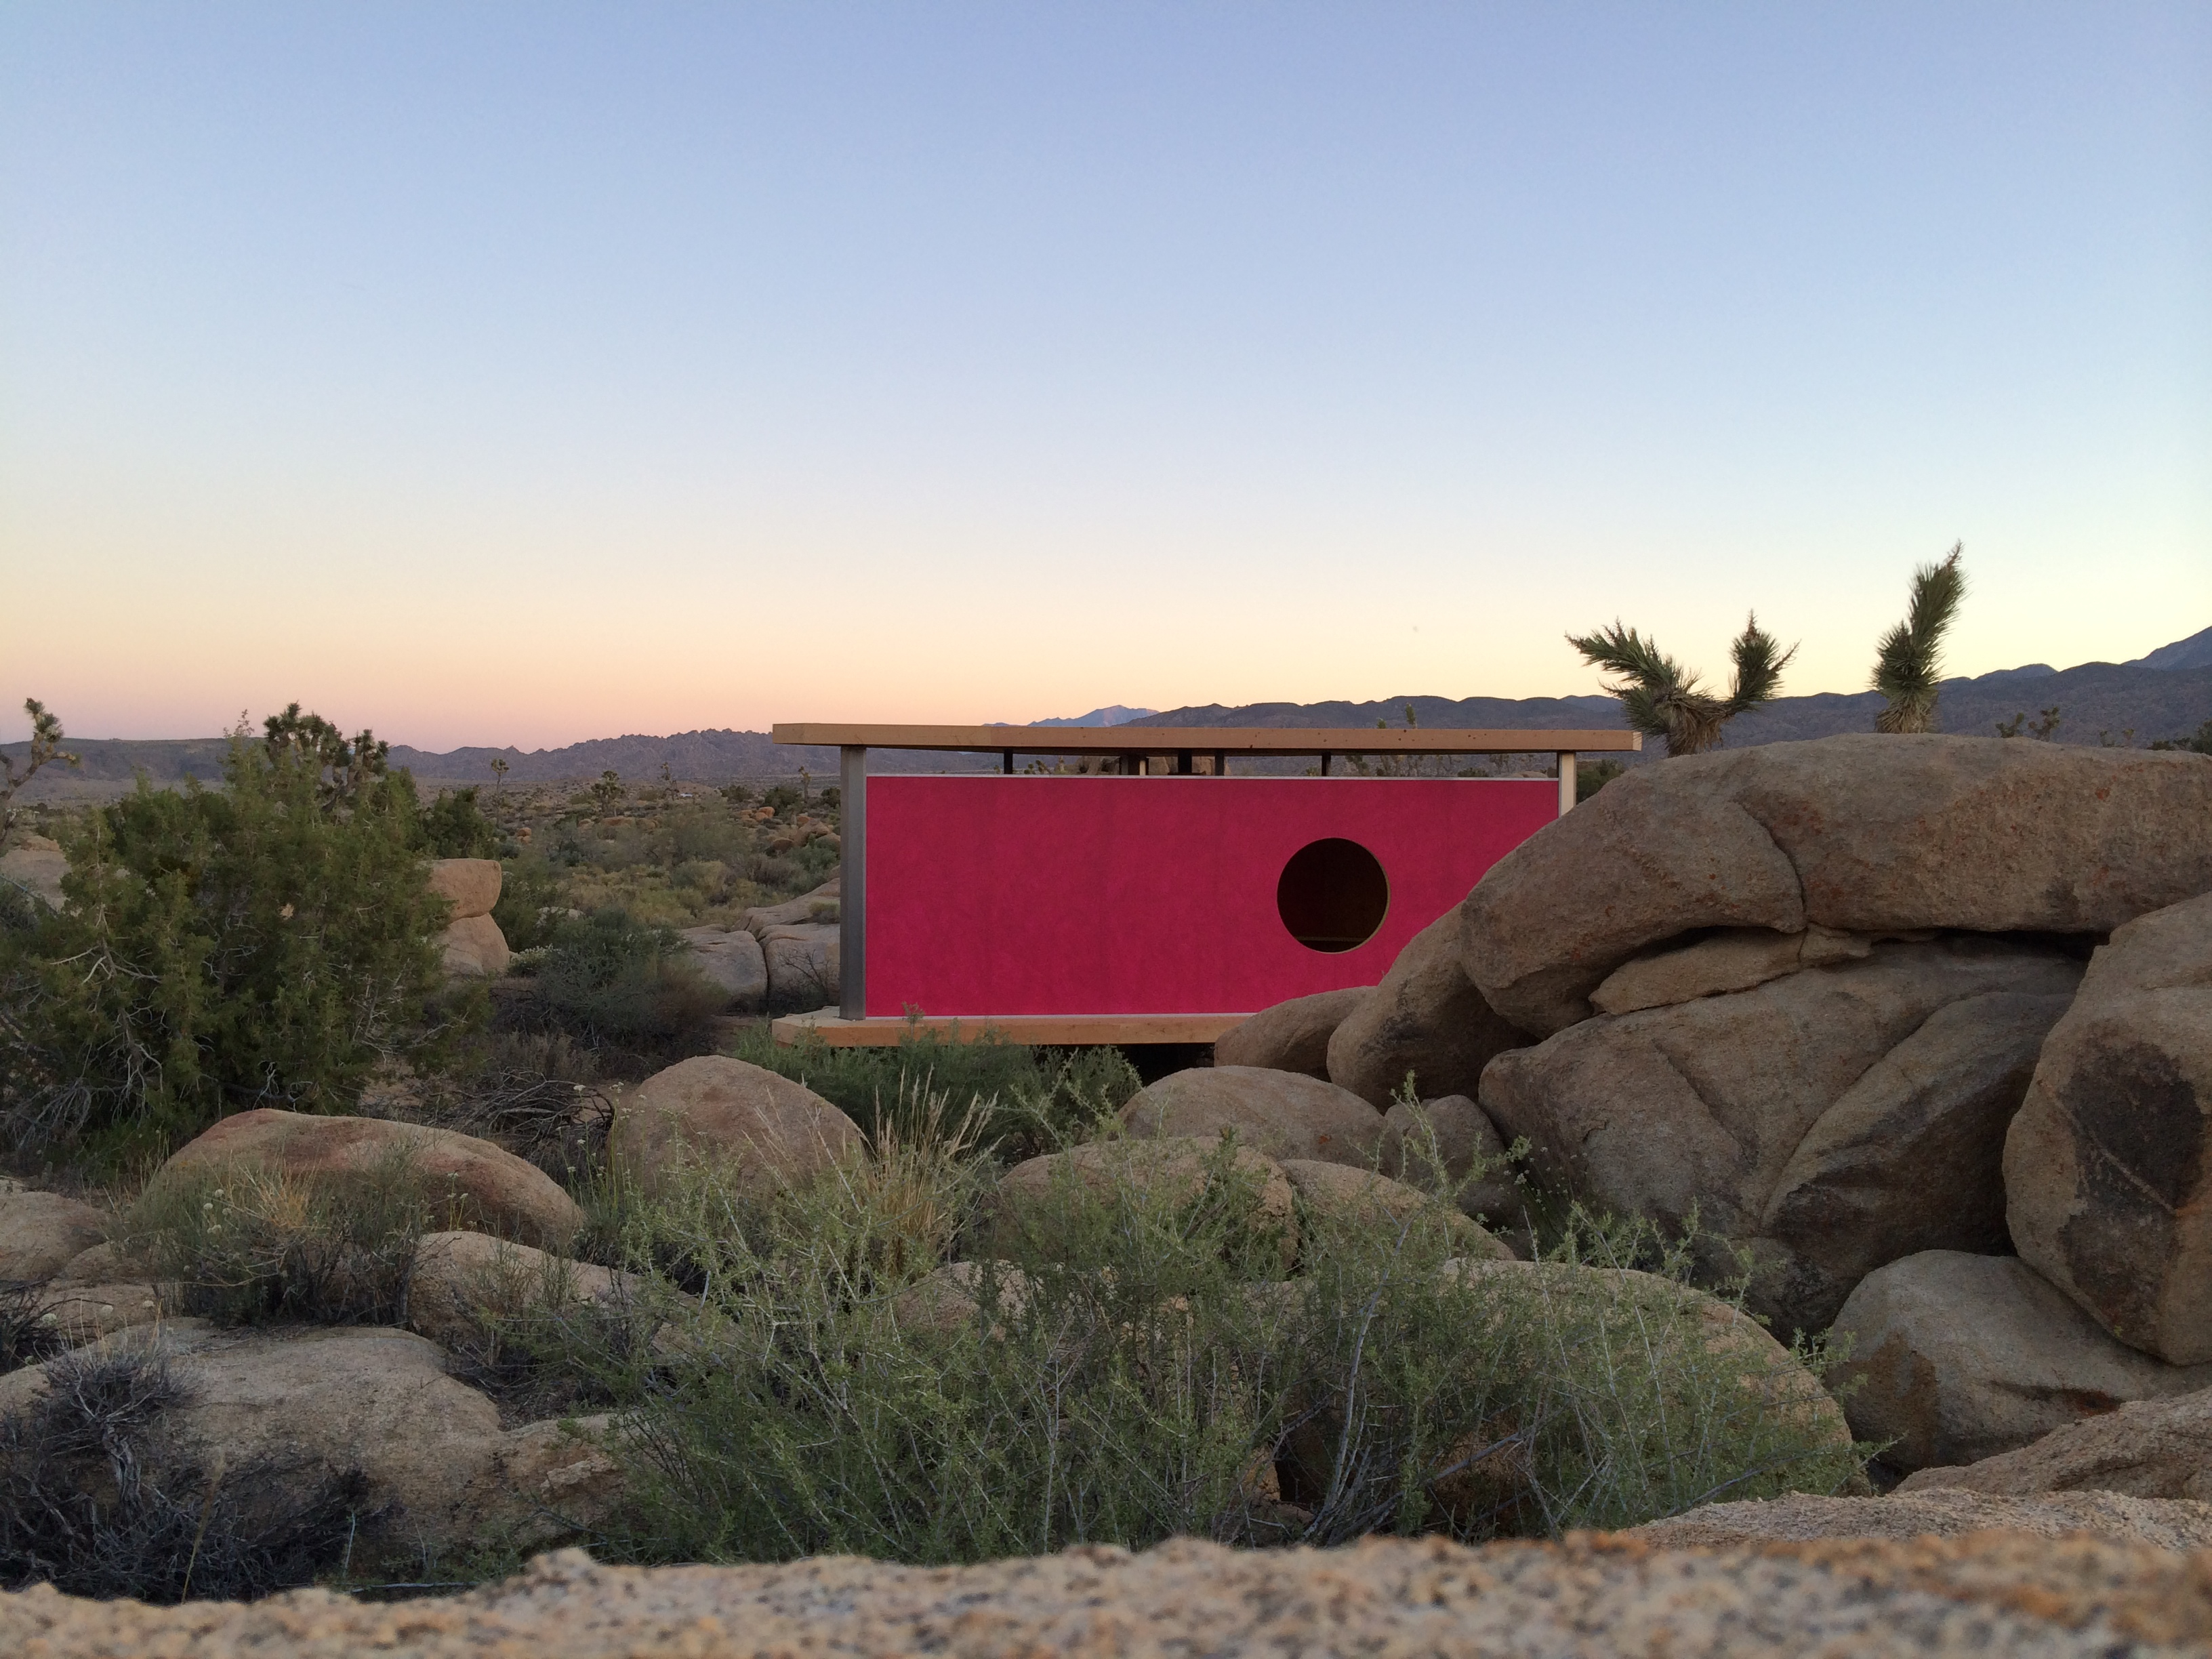 GRADUALLY / WE BECAME AWARE / OF A HUM IN THE ROOM installation by Halsey Rodman at High Desert Test Sites' Andy's Gamma Gulch parcel outside of Joshua Tree